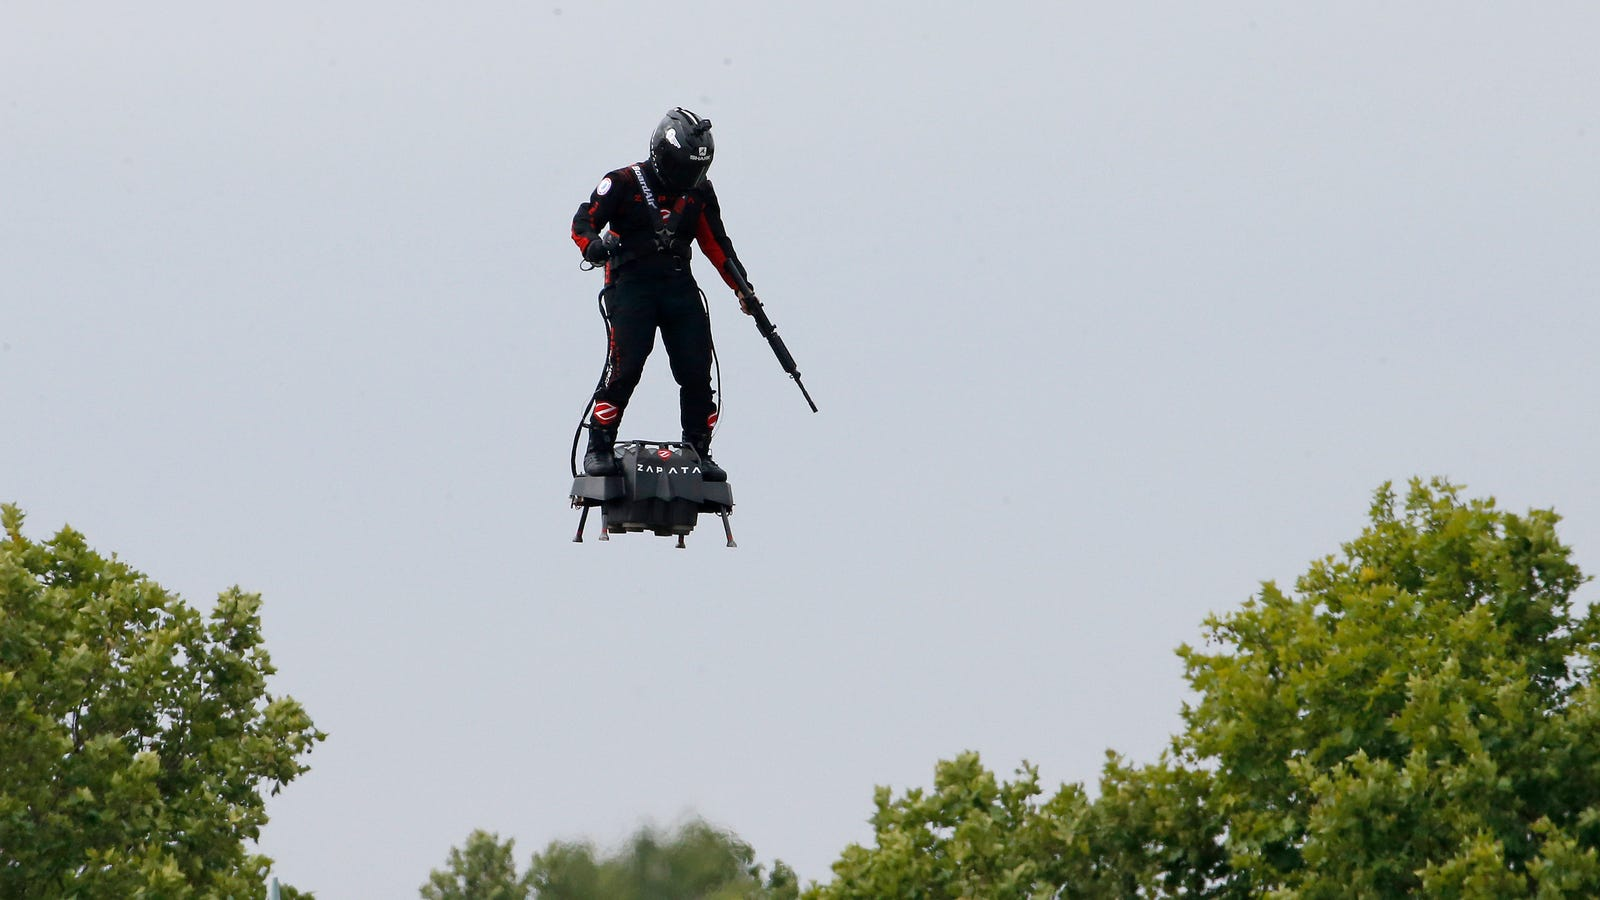 French Inventor Touts Rifle While Flying Turbine-Powered Flyboard at Bastille Day Celebrations